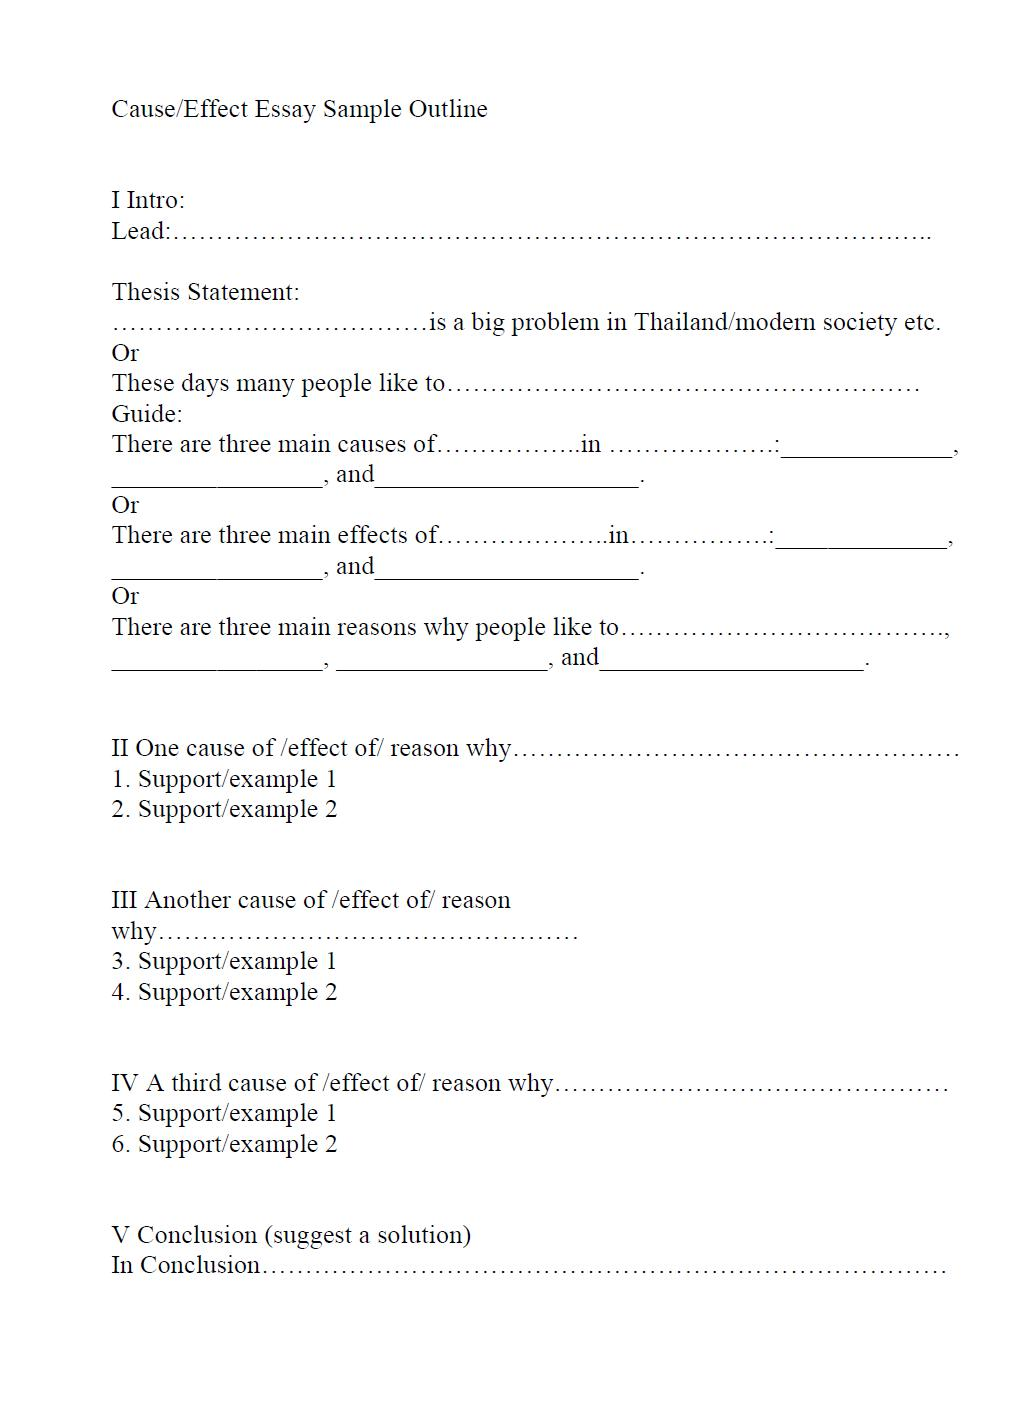 Ultrasound Technician essay writing form